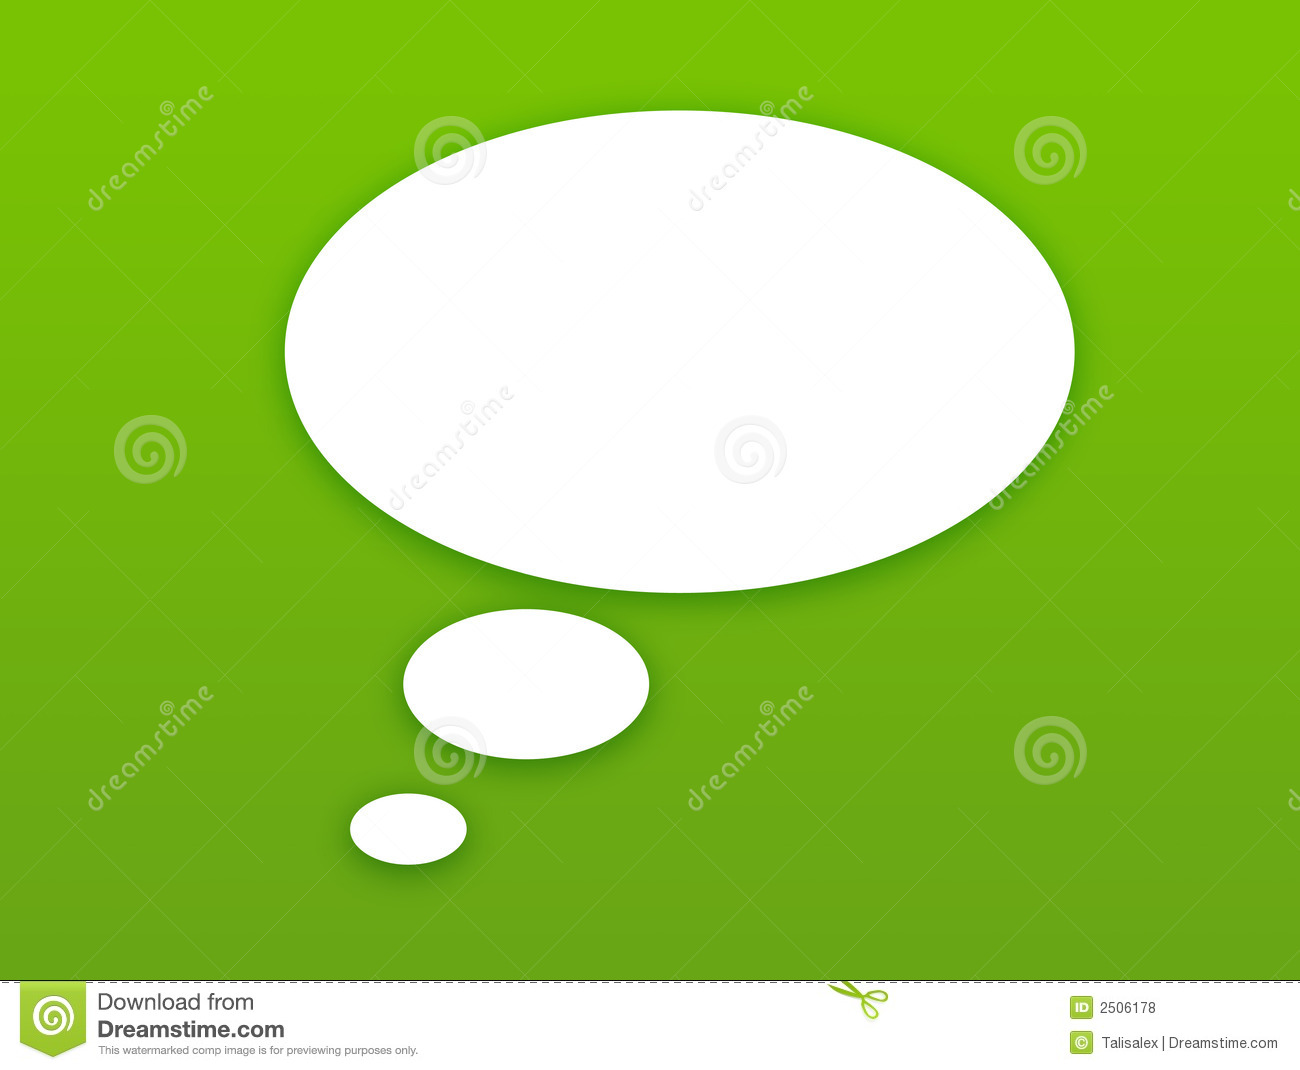 Download Wallpaper With Talking Bubble Stock Illustration